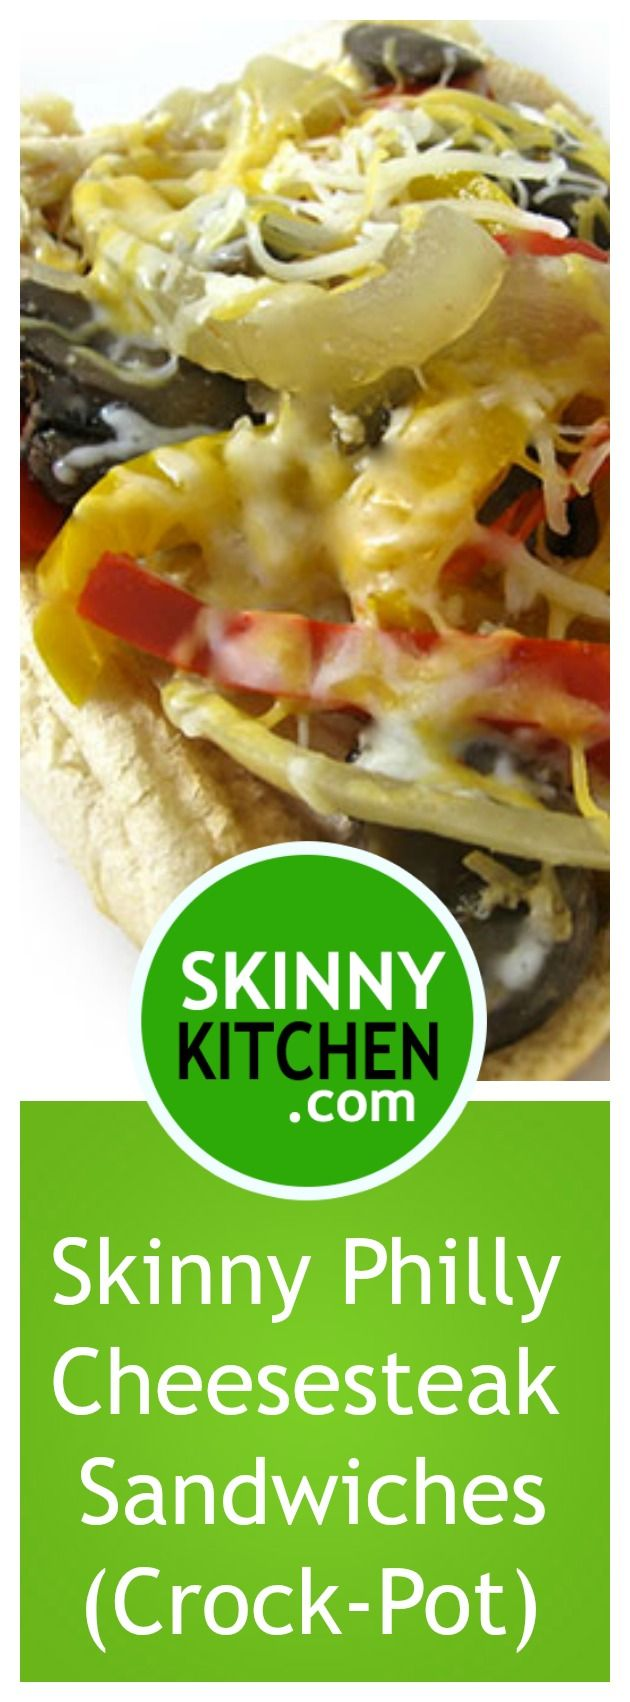 Skinny Philly Chicken Cheesesteak Sandwiches in the Crock-Pot. Each delicious, very filling sandwich has 280 calories, 7g fat and 7 SmartPoints. http://www.skinnykitchen.com/recipes/skinny-philly-chicken-cheesesteak-sandwiches-in-the-crock-pot/